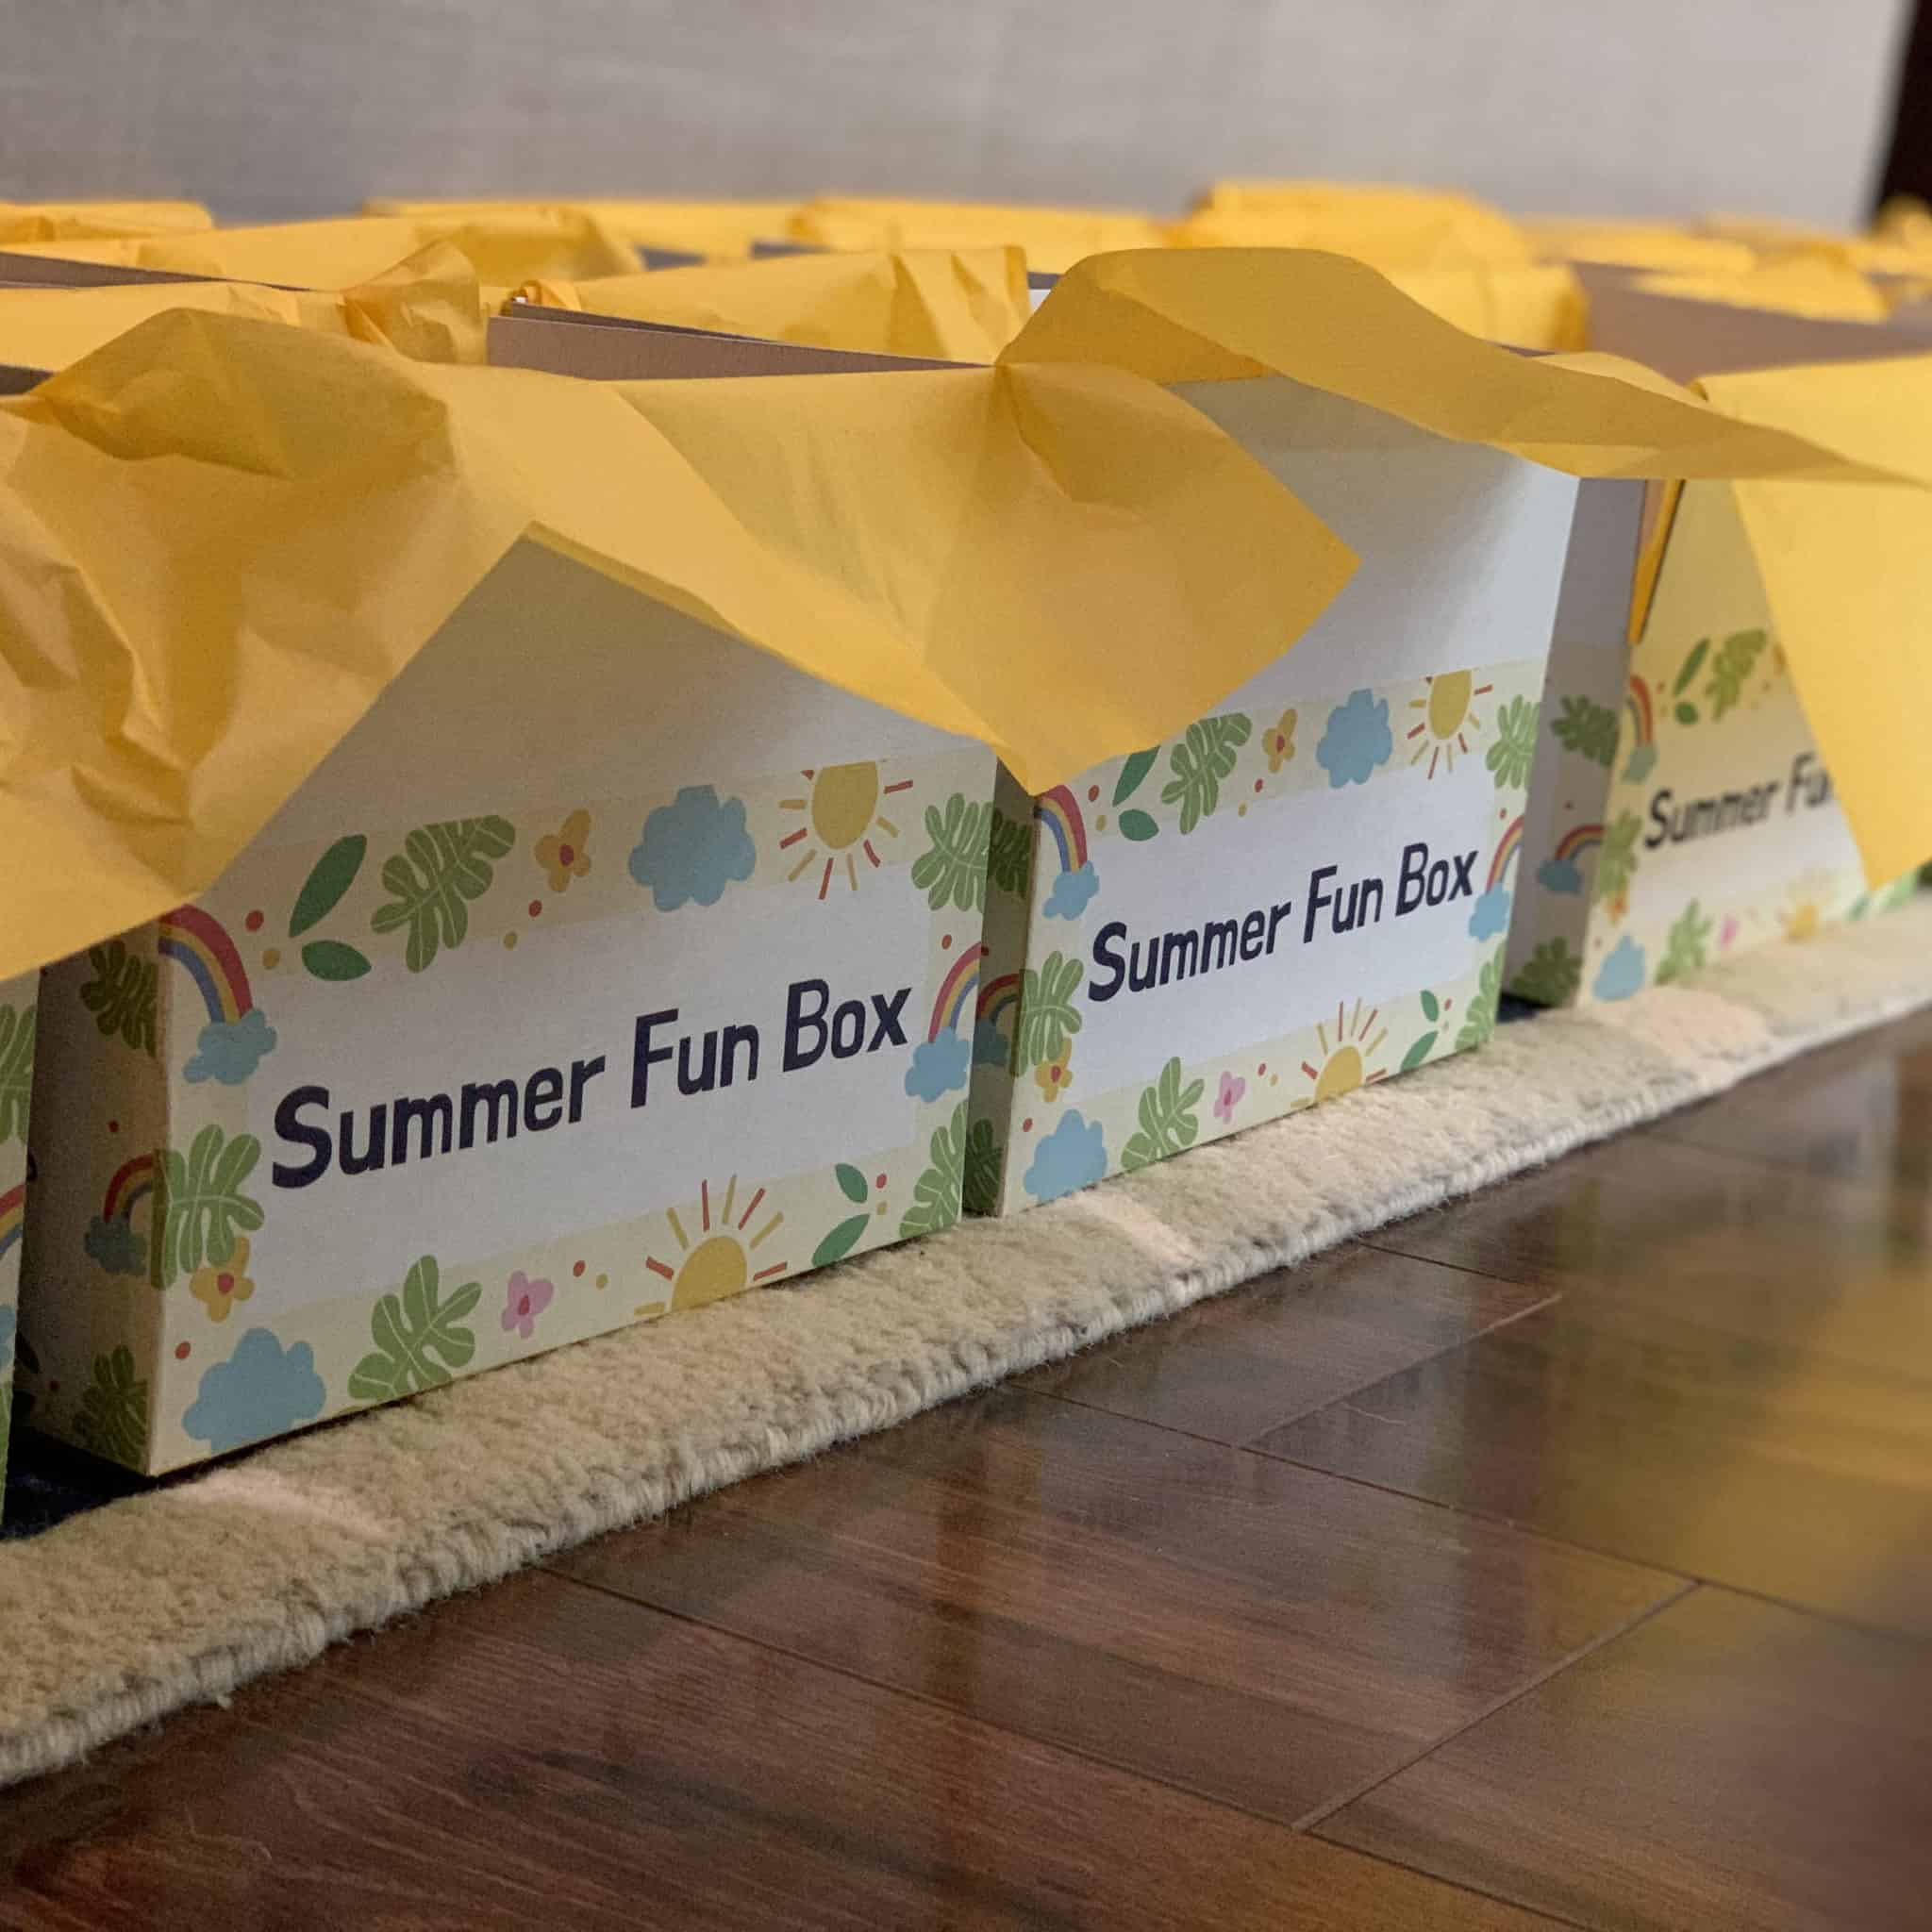 Boxes with yellow tissue paper labeled summer fun box.